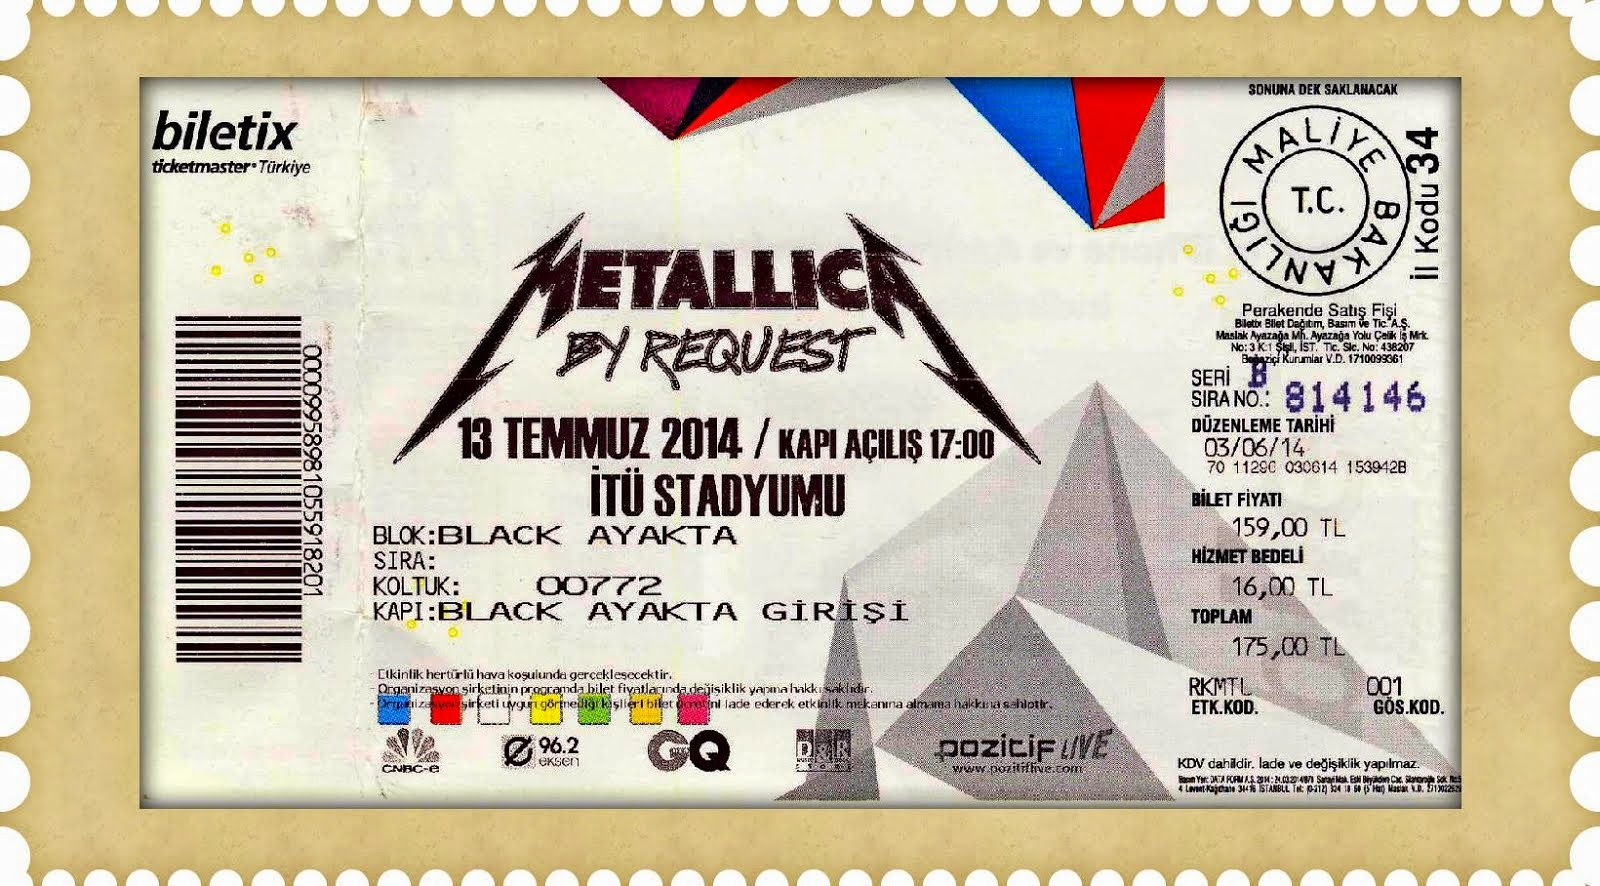 Istanbul : Metallica by Request (13-7-2014)